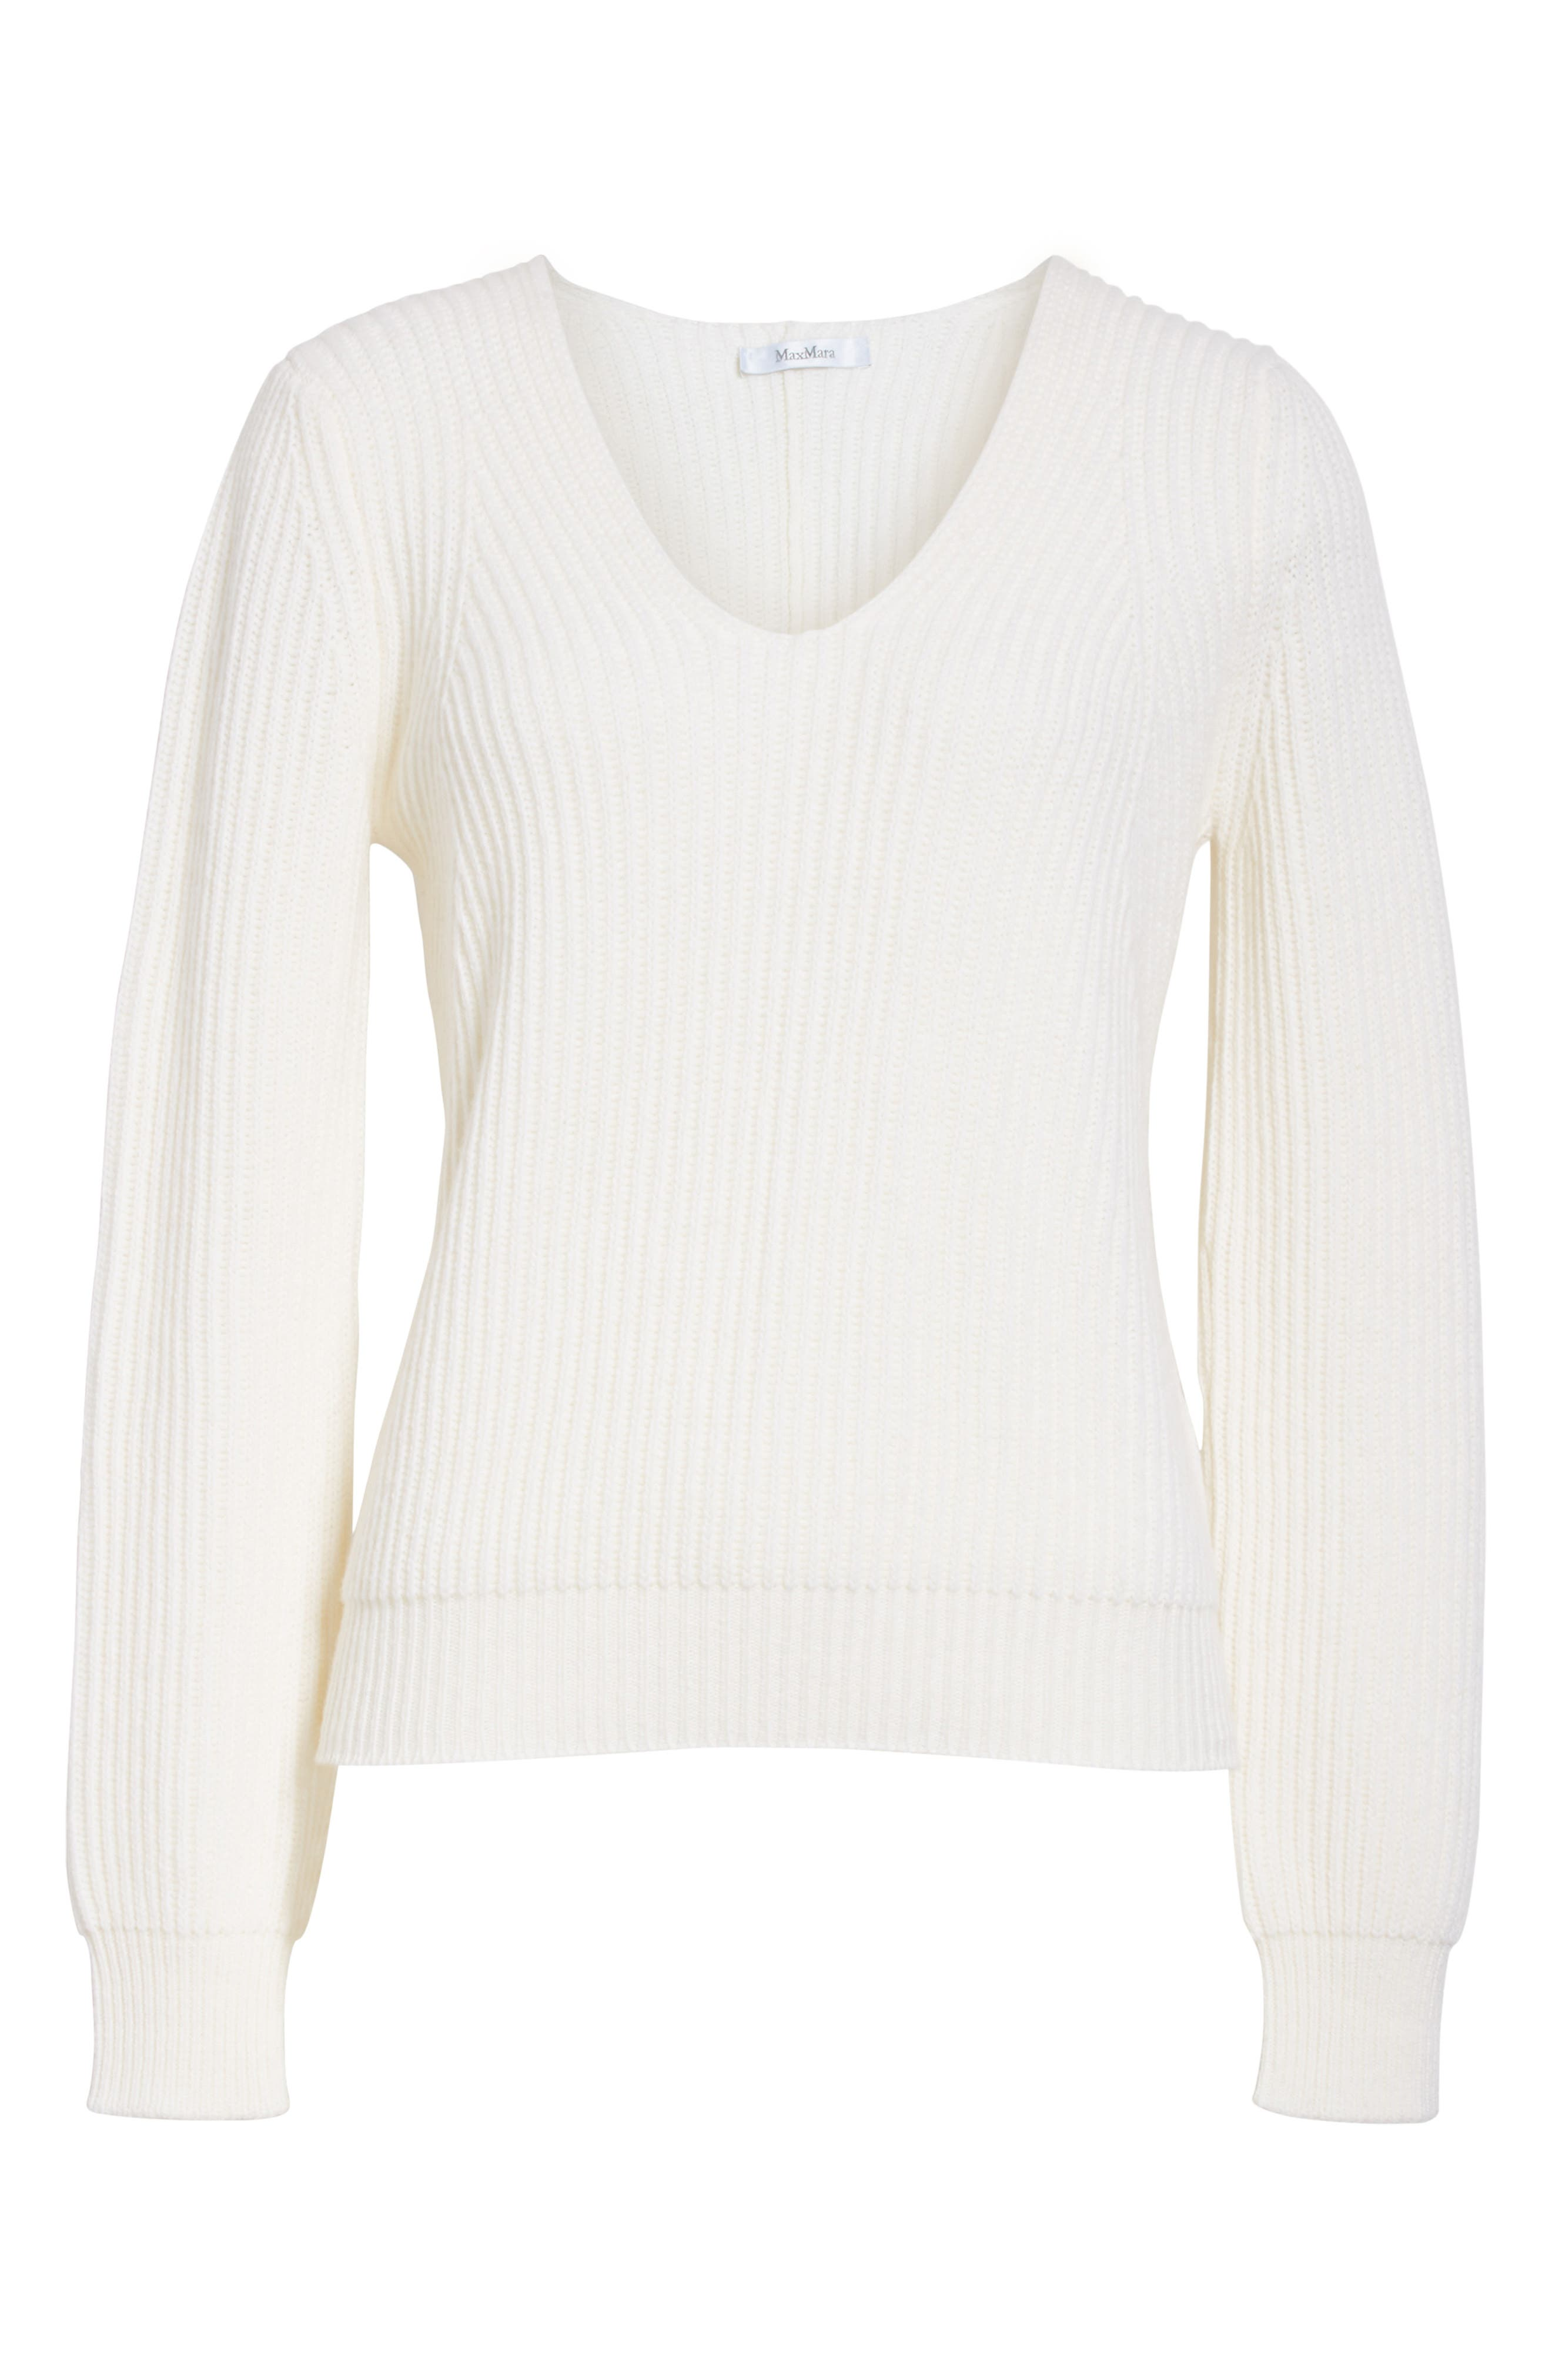 Sax Wool & Cashmere Sweater,                             Alternate thumbnail 6, color,                             900